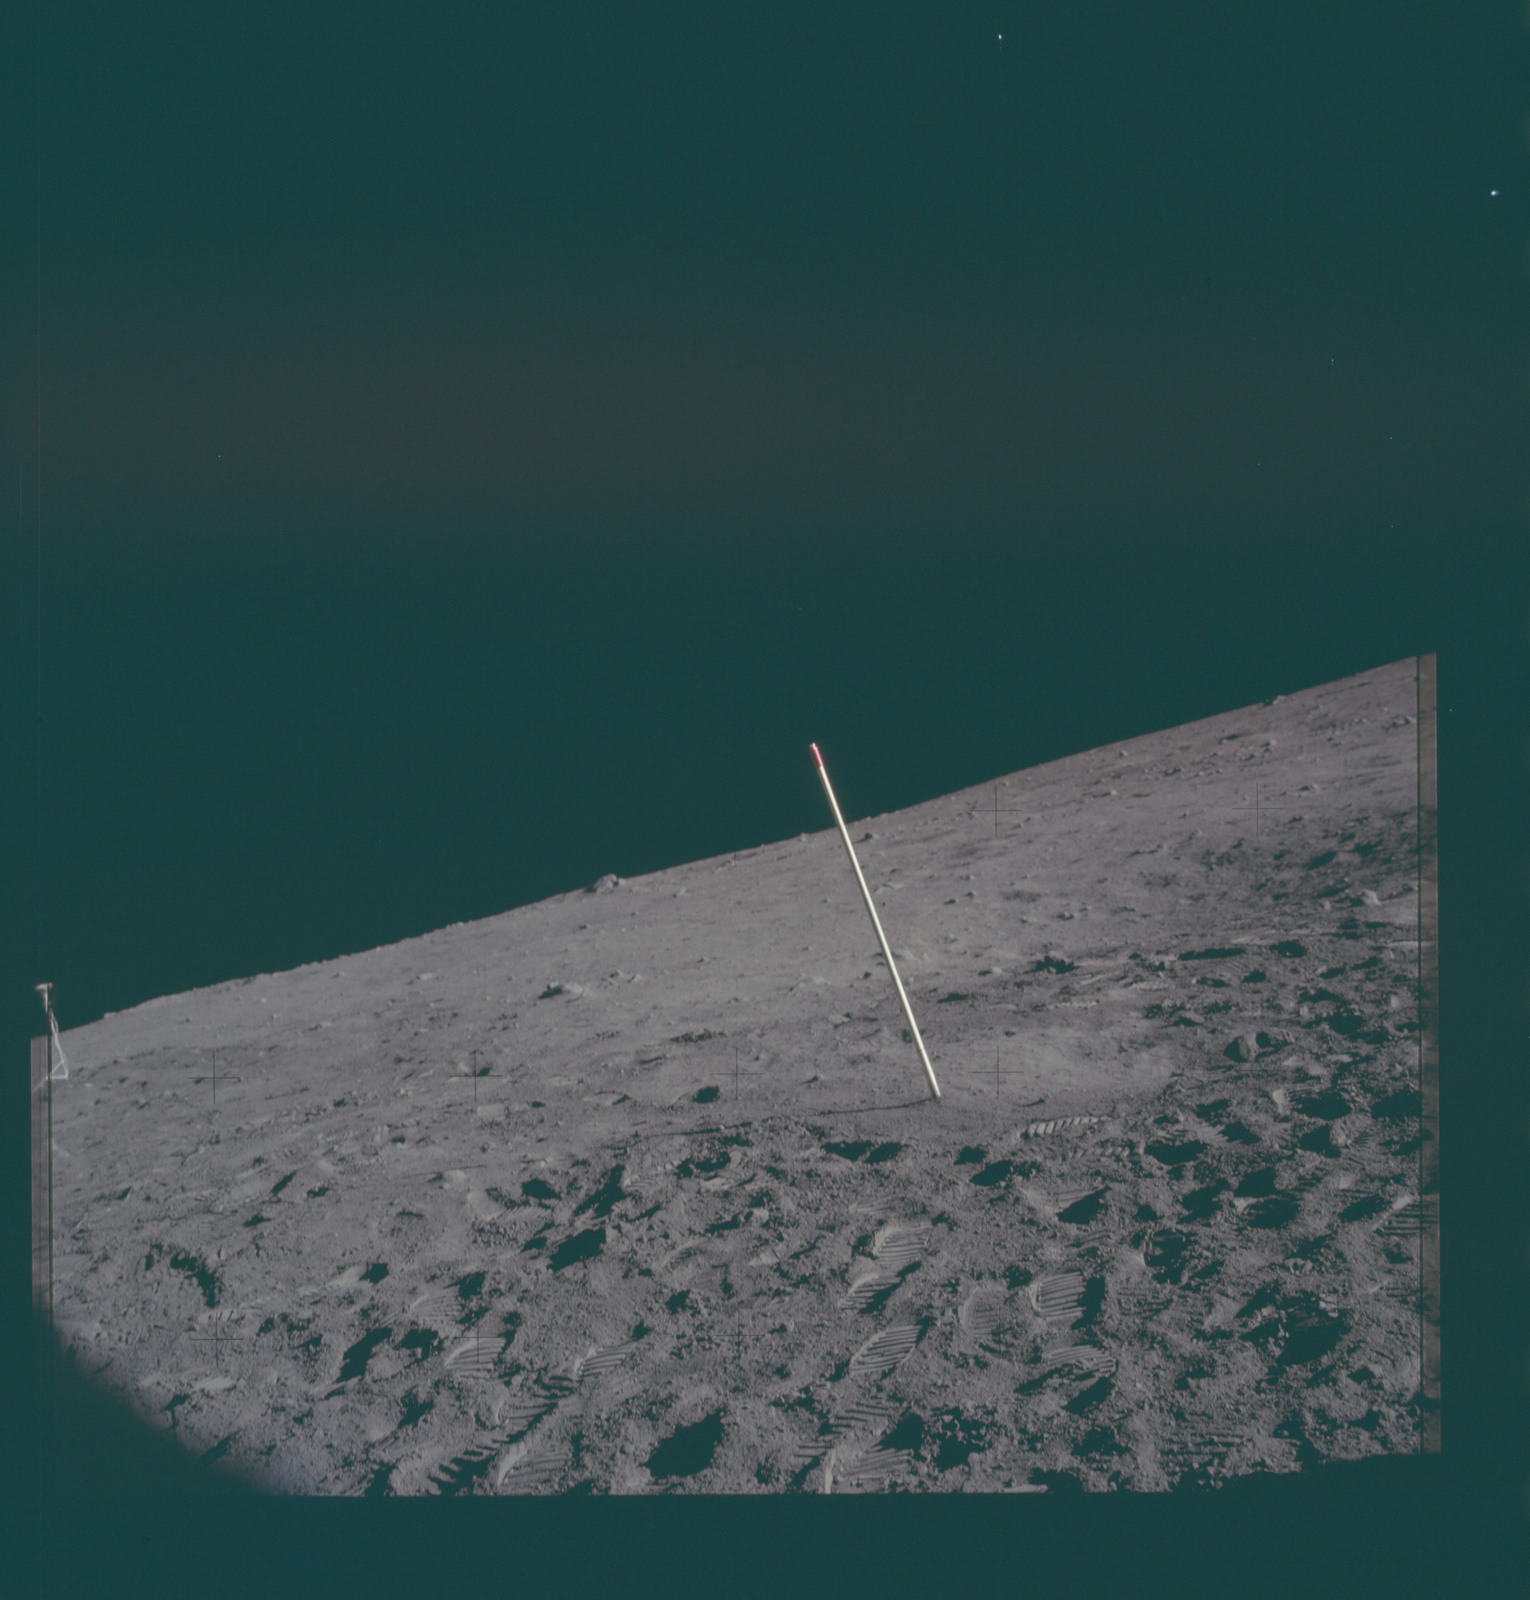 AS11-40-5968 - Apollo 11 - Apollo 11 Mission image - Lunar surface and horizon